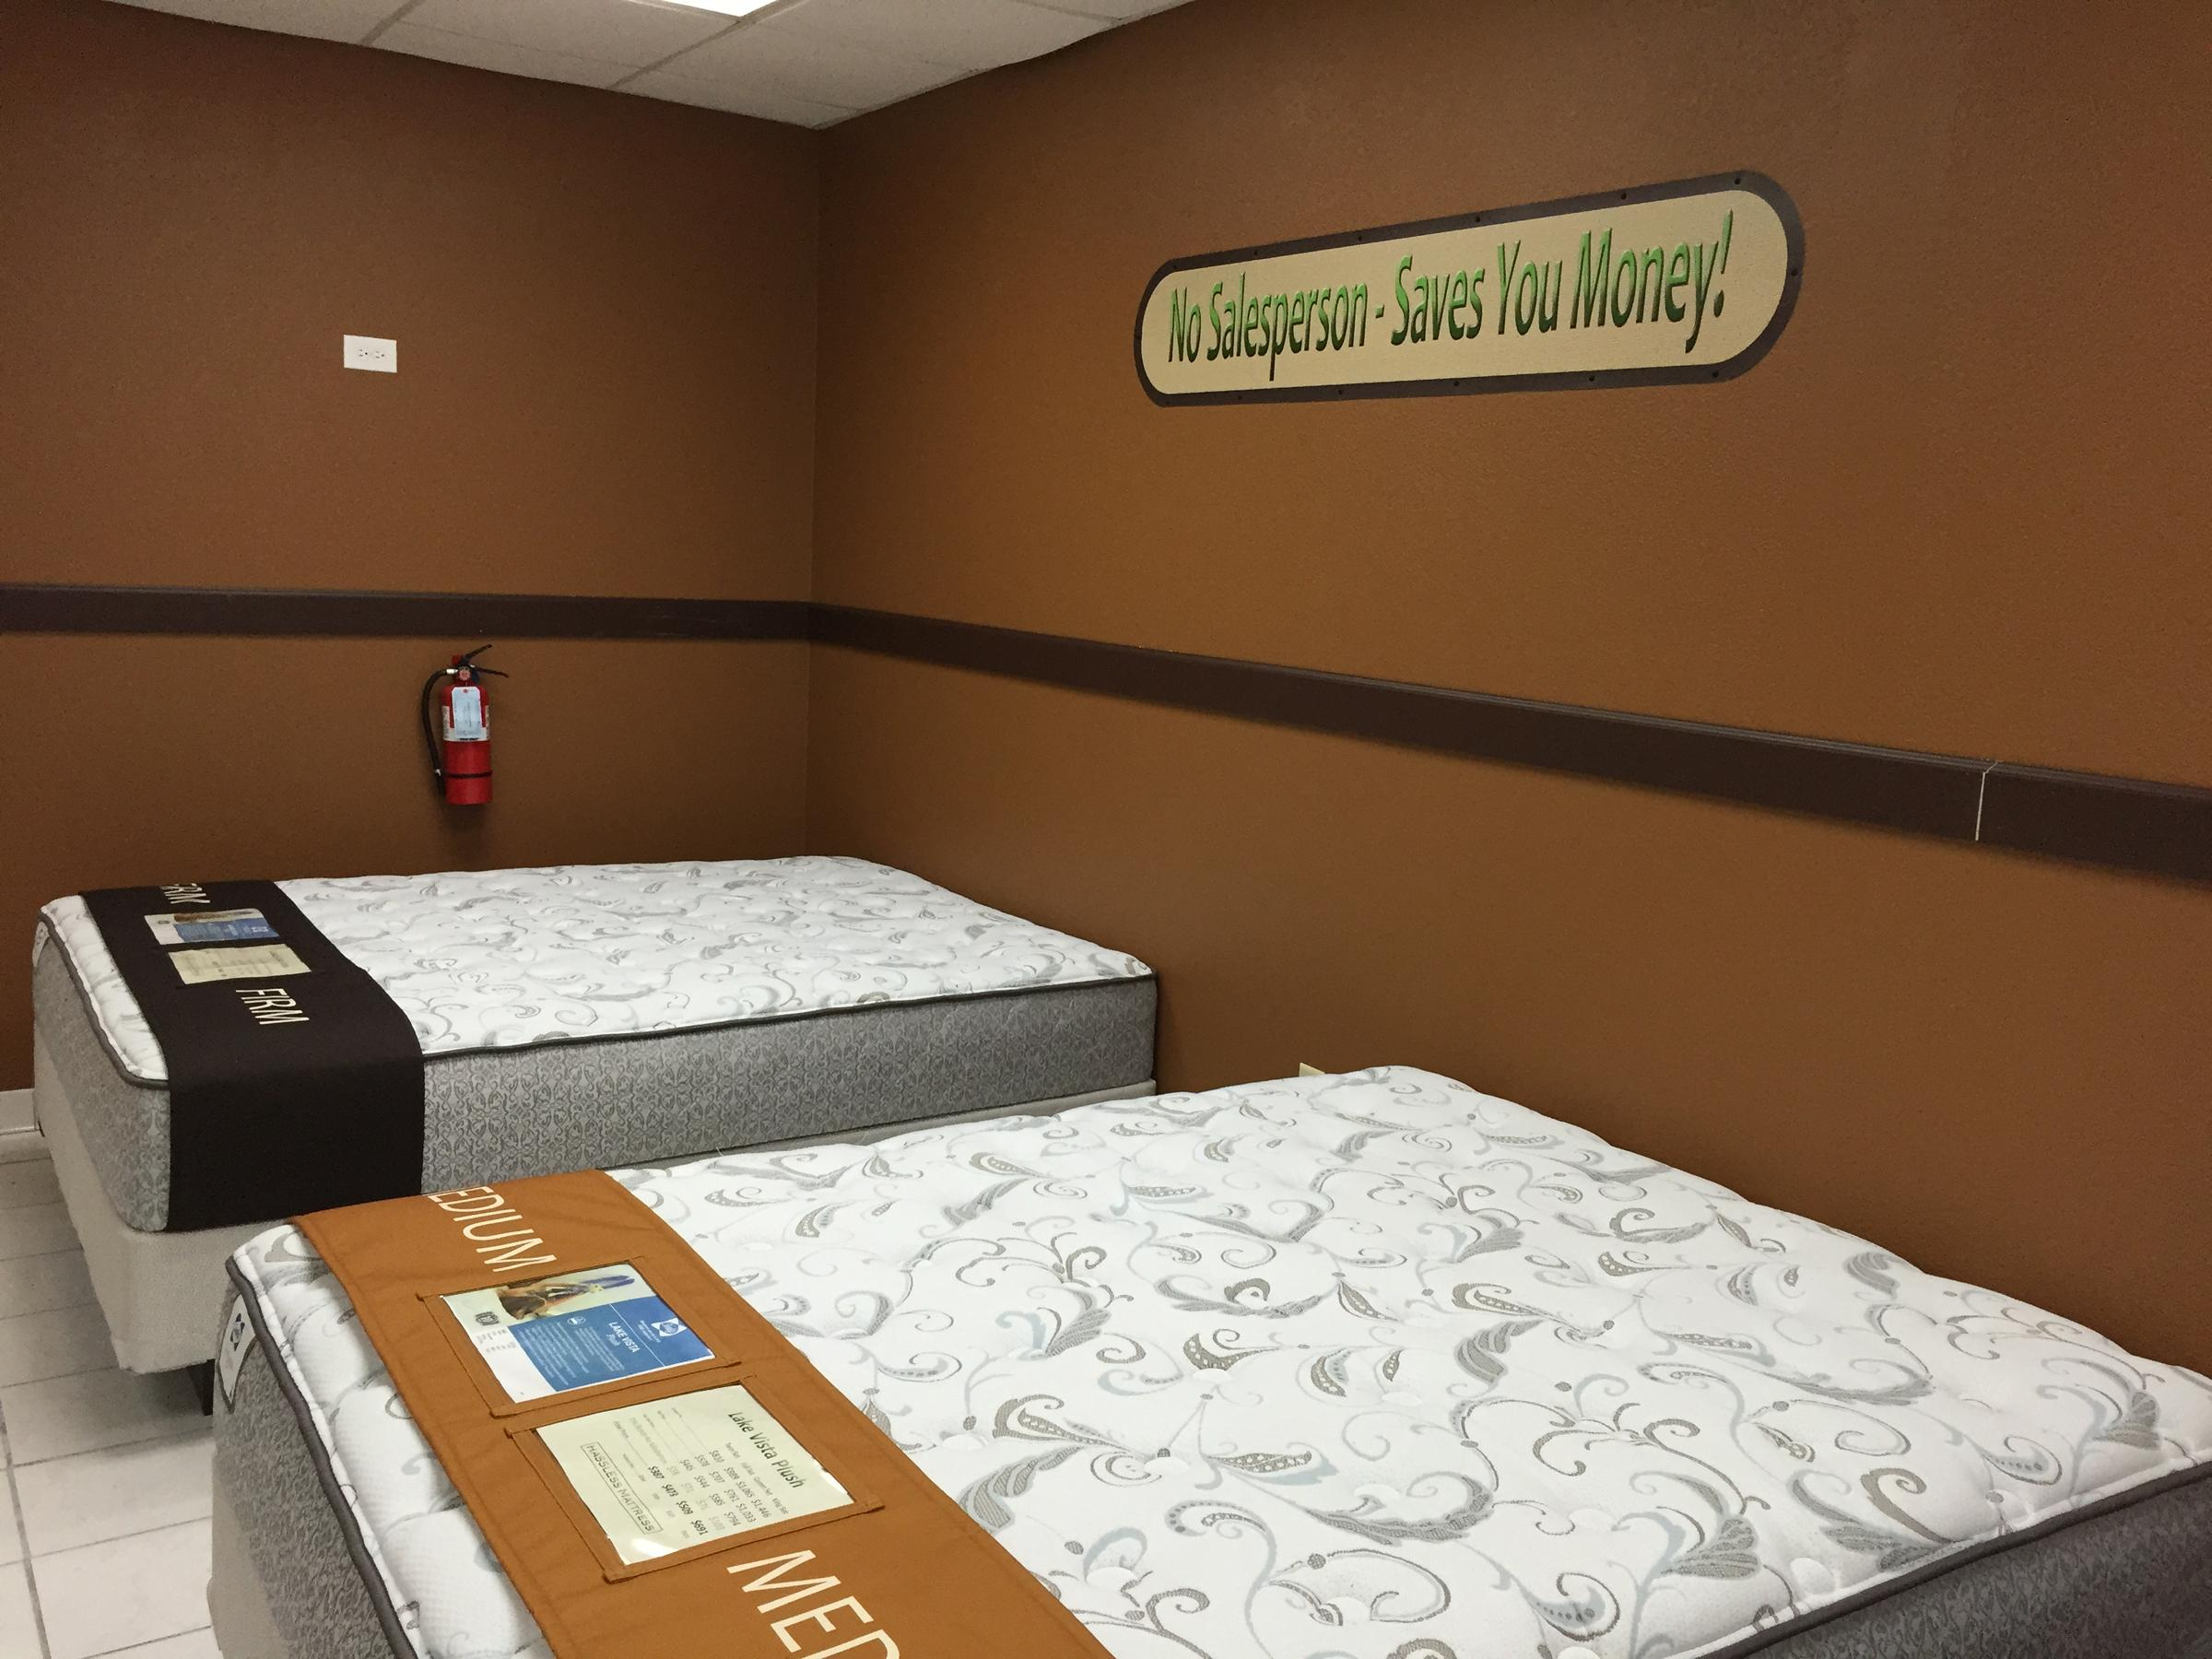 The Company Says It Can Offer Lower Prices Because S Not Paying Anyone To Mattresses